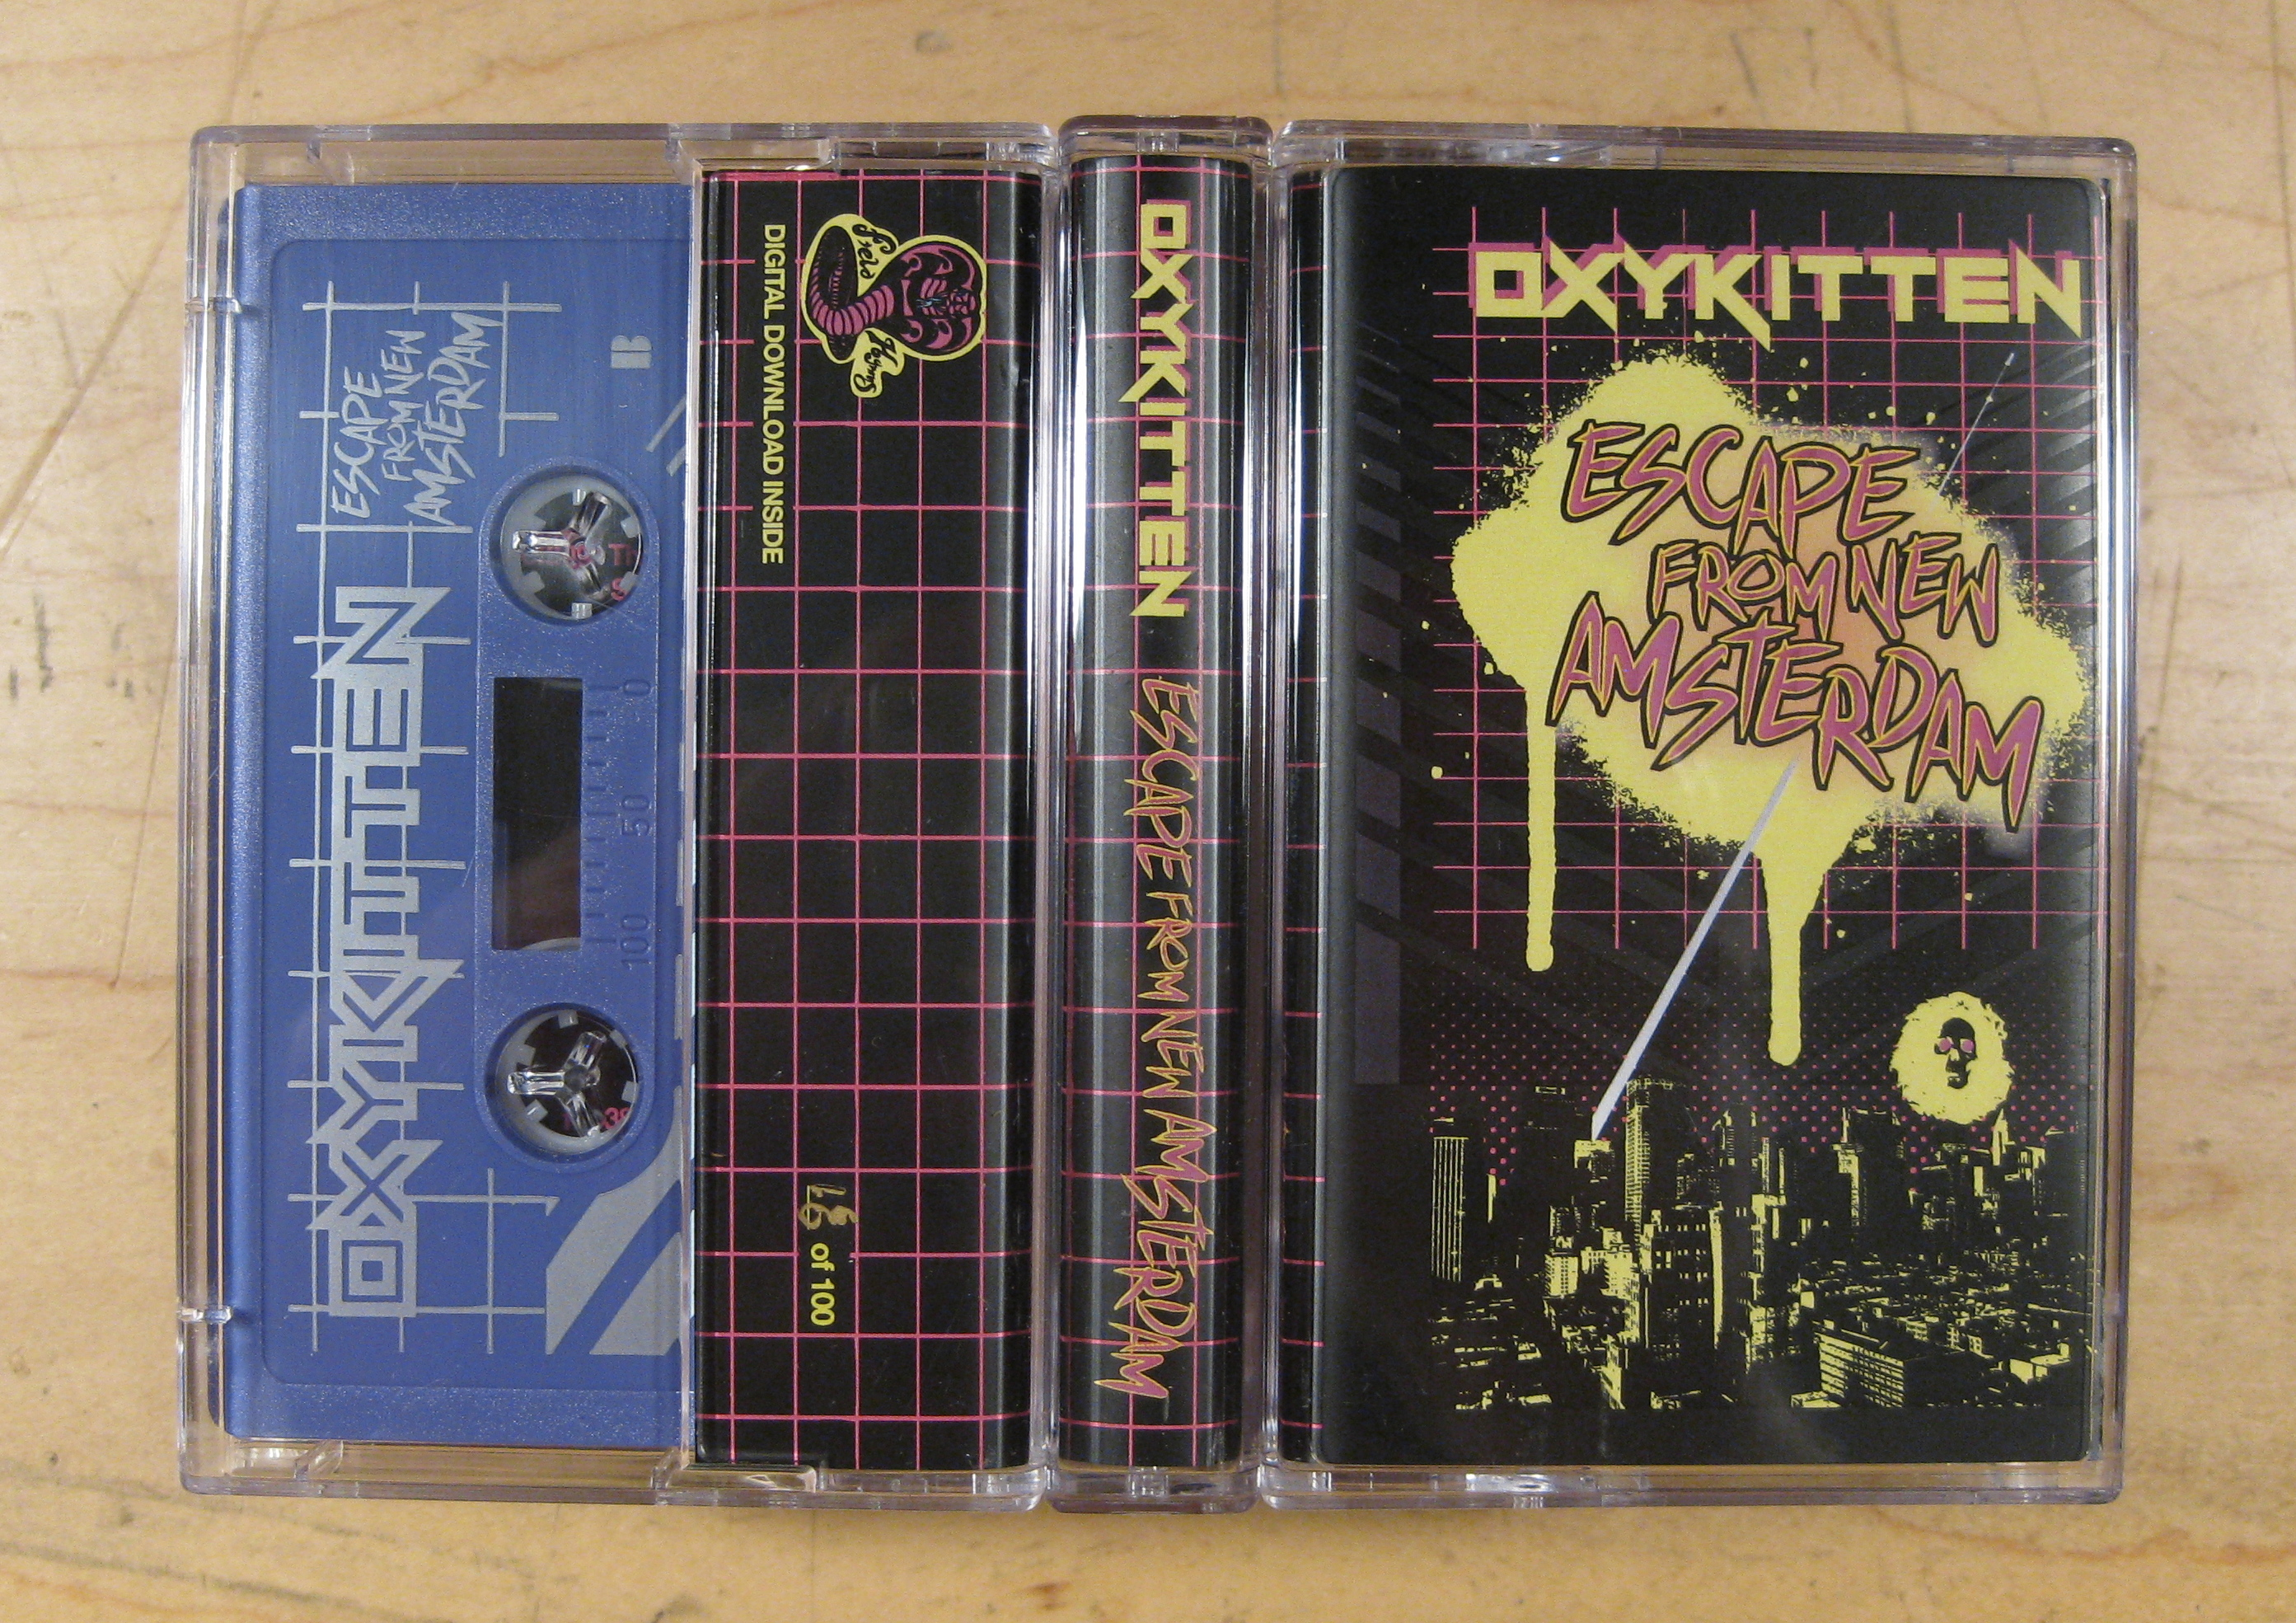 oxykitten, escape from new amsterdam, cassette, portland, oregon